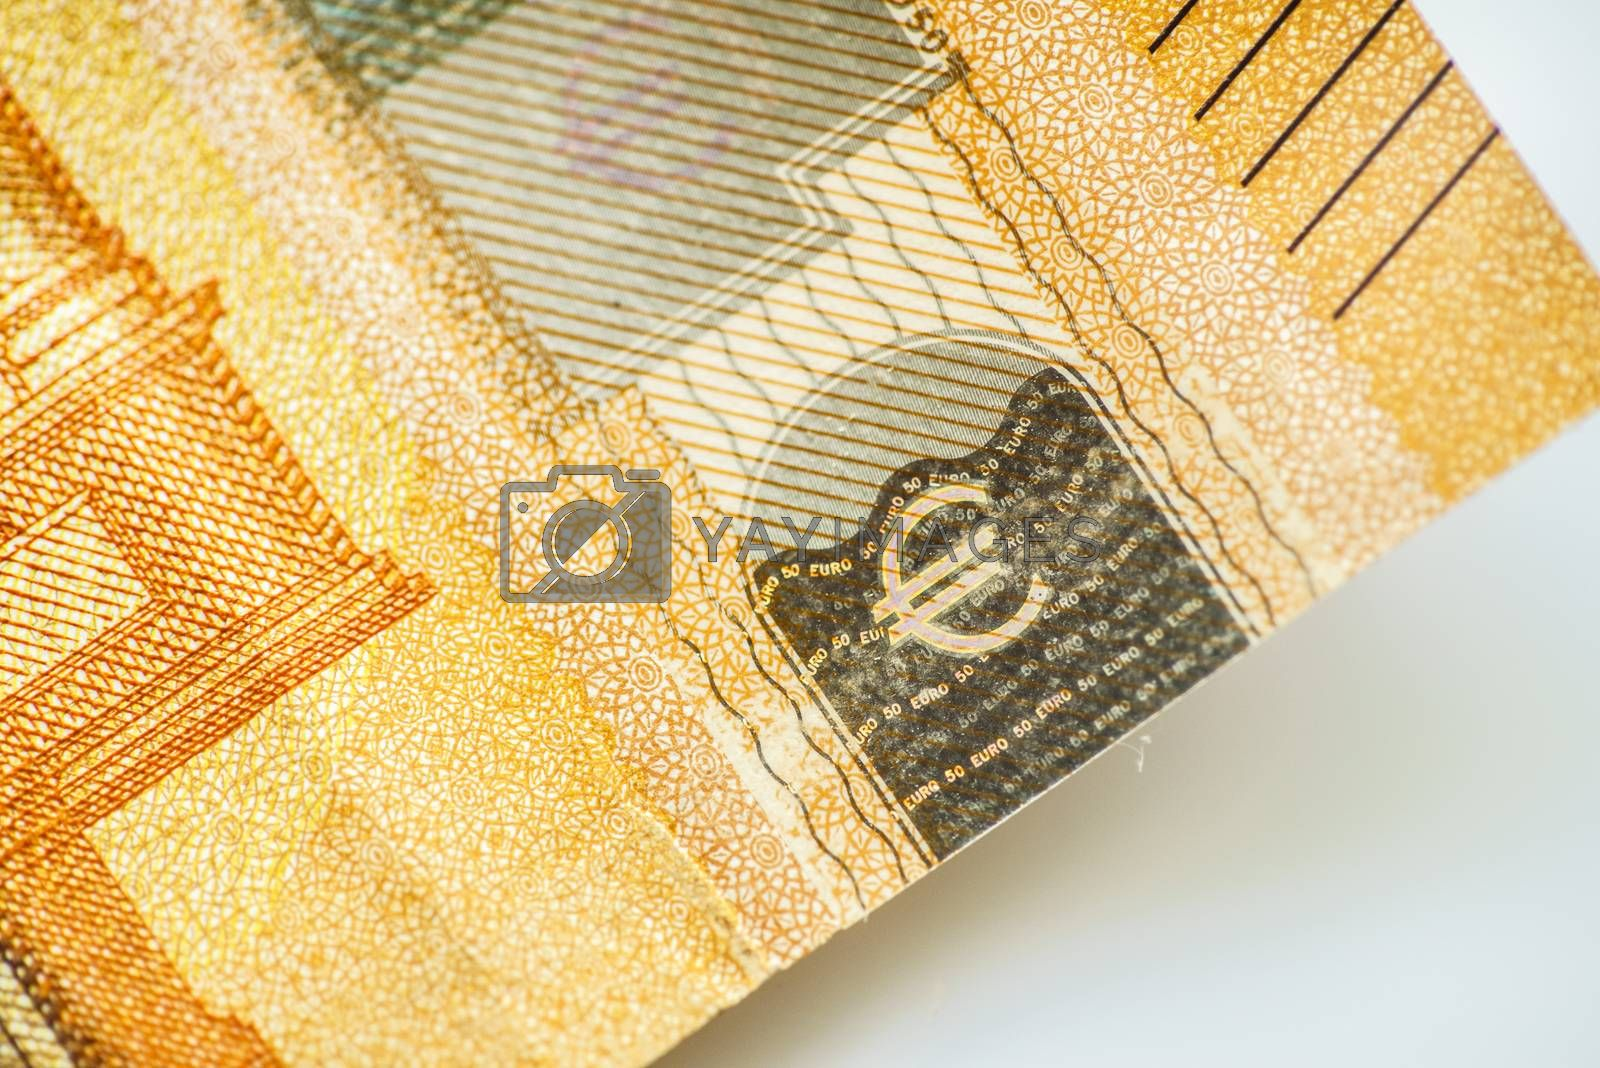 Closeup Euro Money Banknotes, Euro Currency, Macro Details of Fifty Euro Banknote, Cash, Bill Concept, High Resolution Photo